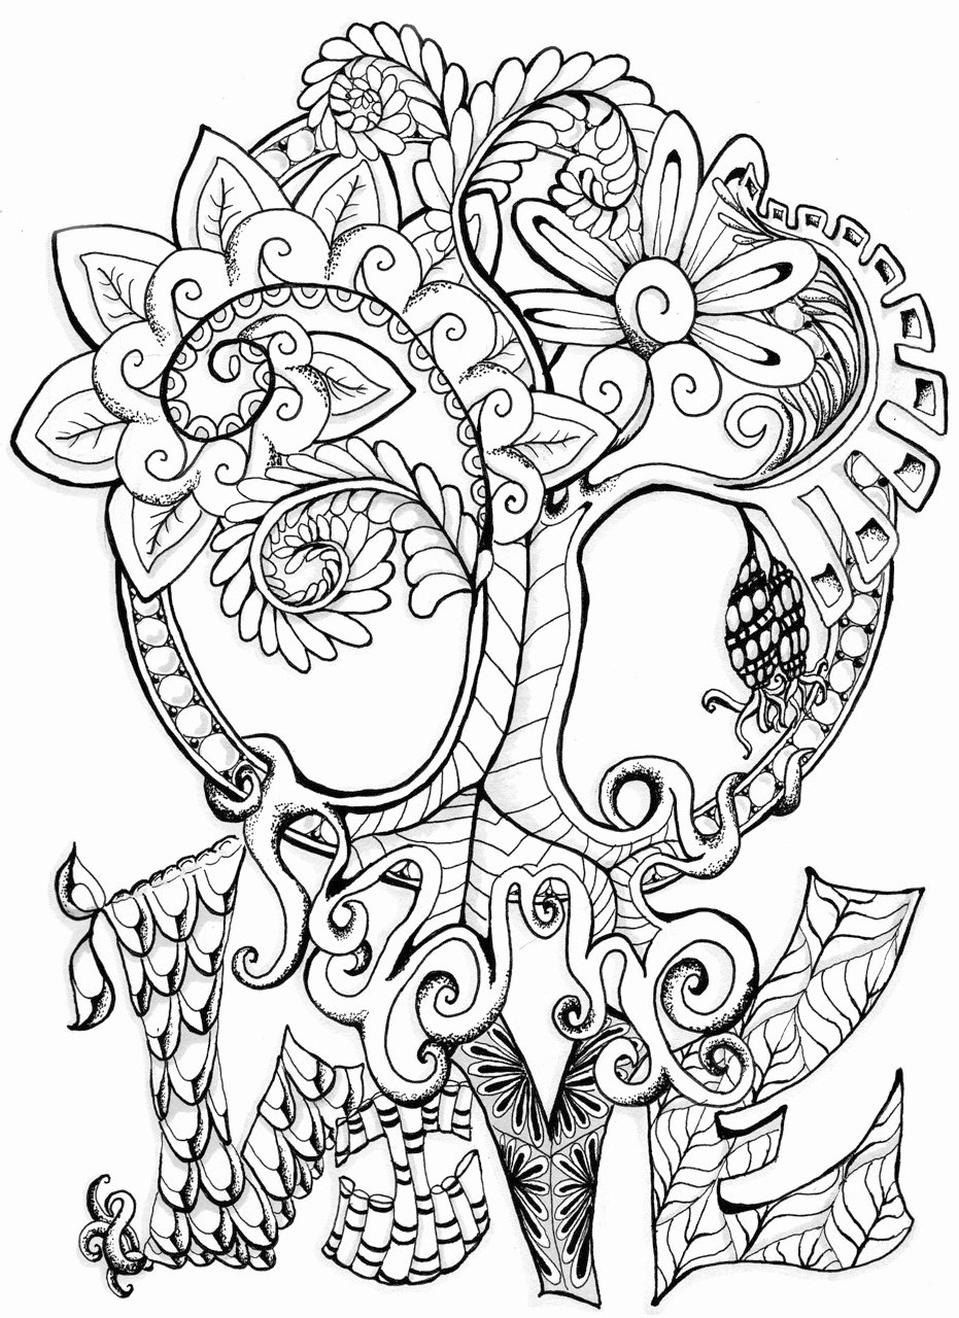 Spring Coloring Pages for Adults Love Blooms in Spring